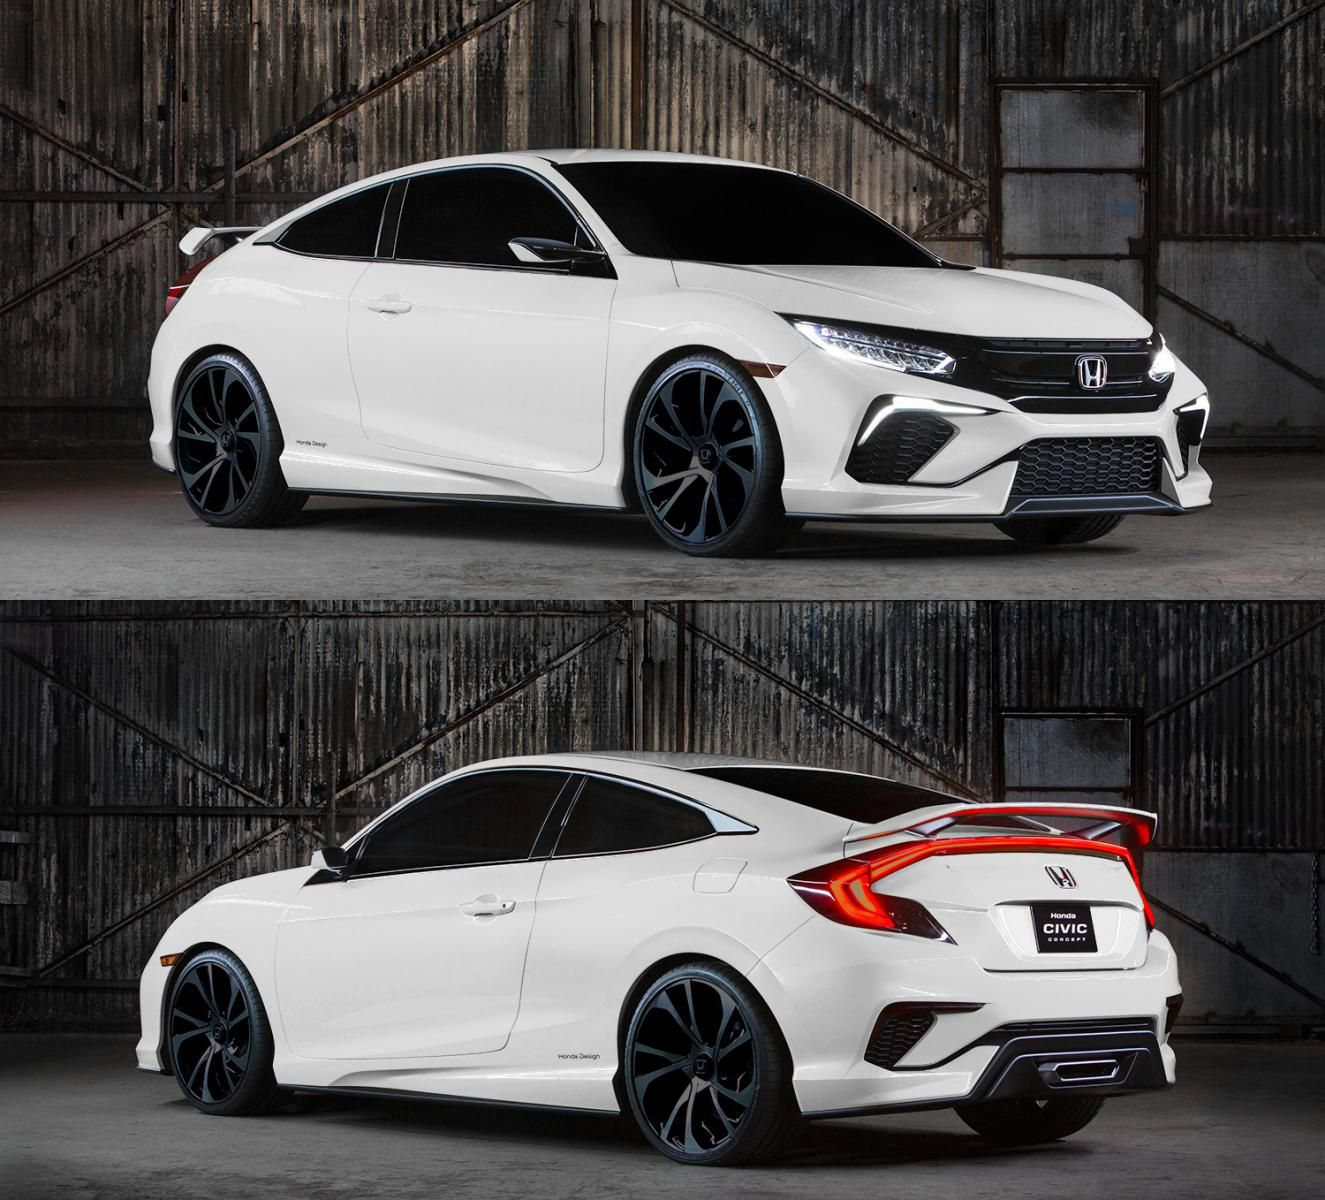 2016 civic si google search honda civic 2016 honda civic honda civic si honda civic